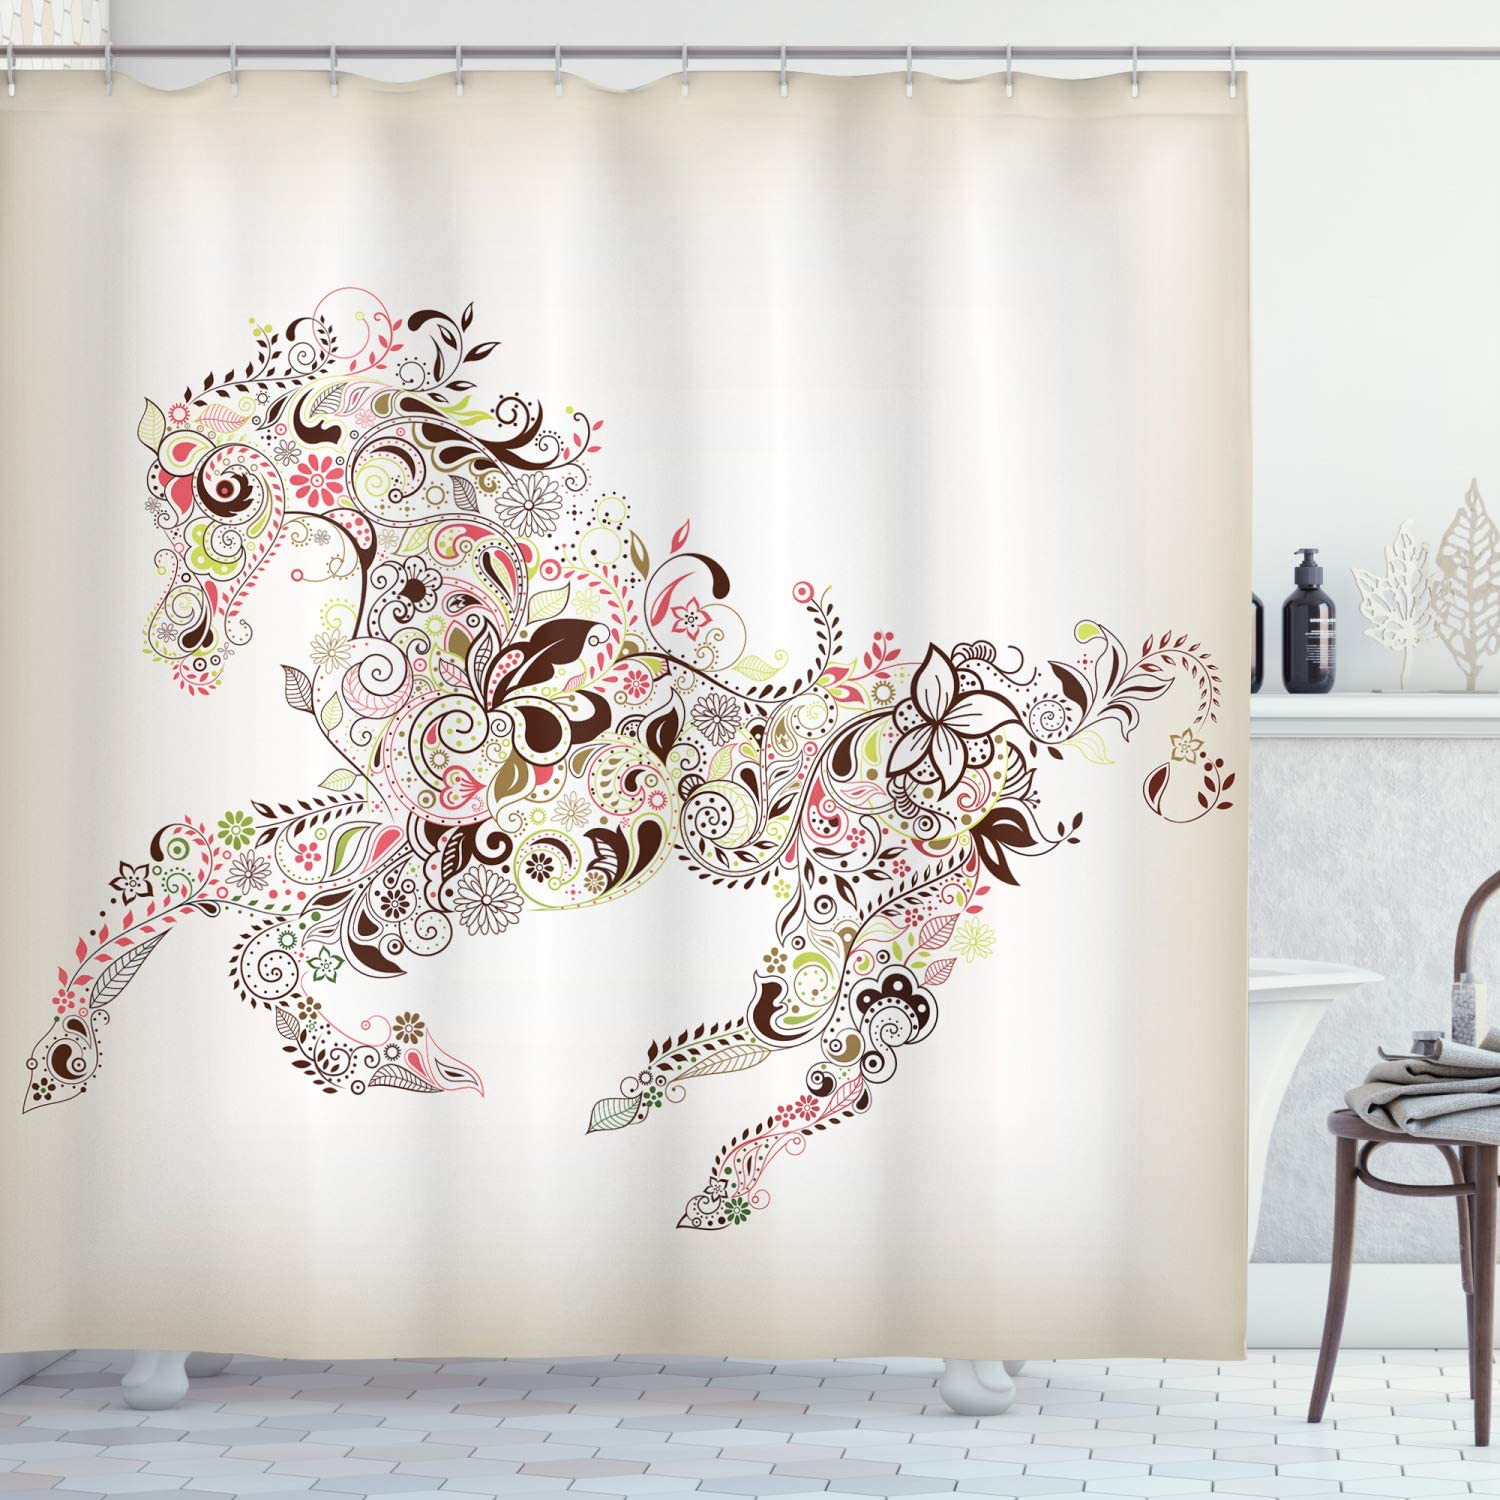 """Ambesonne Abstract Shower Curtain, Abstract Floral Horse Flower Leaf Ornamental Paisley Pattern Swirl Artwork, Cloth Fabric Bathroom Decor Set with Hooks, 70"""" Long, CreamBrown"""